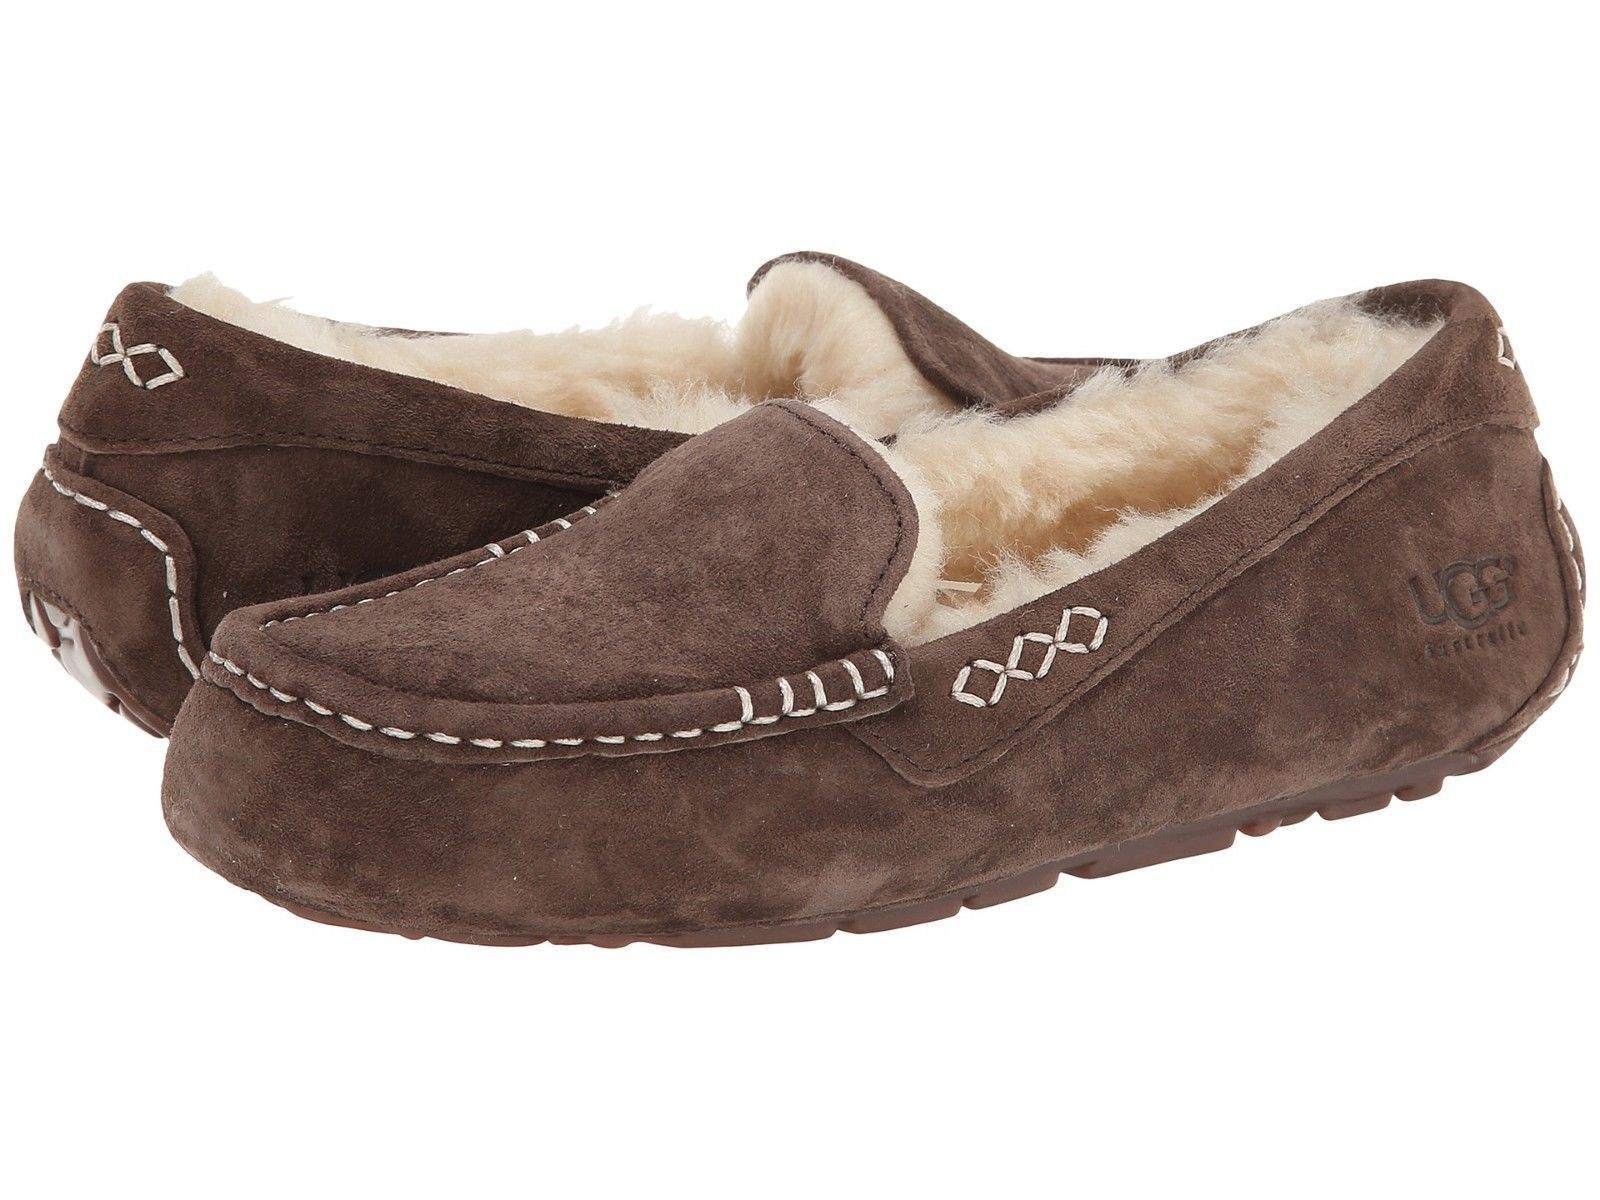 6cb328295ee Details about Women's Shoes UGG Ansley Moccasin Slippers 3312 ...